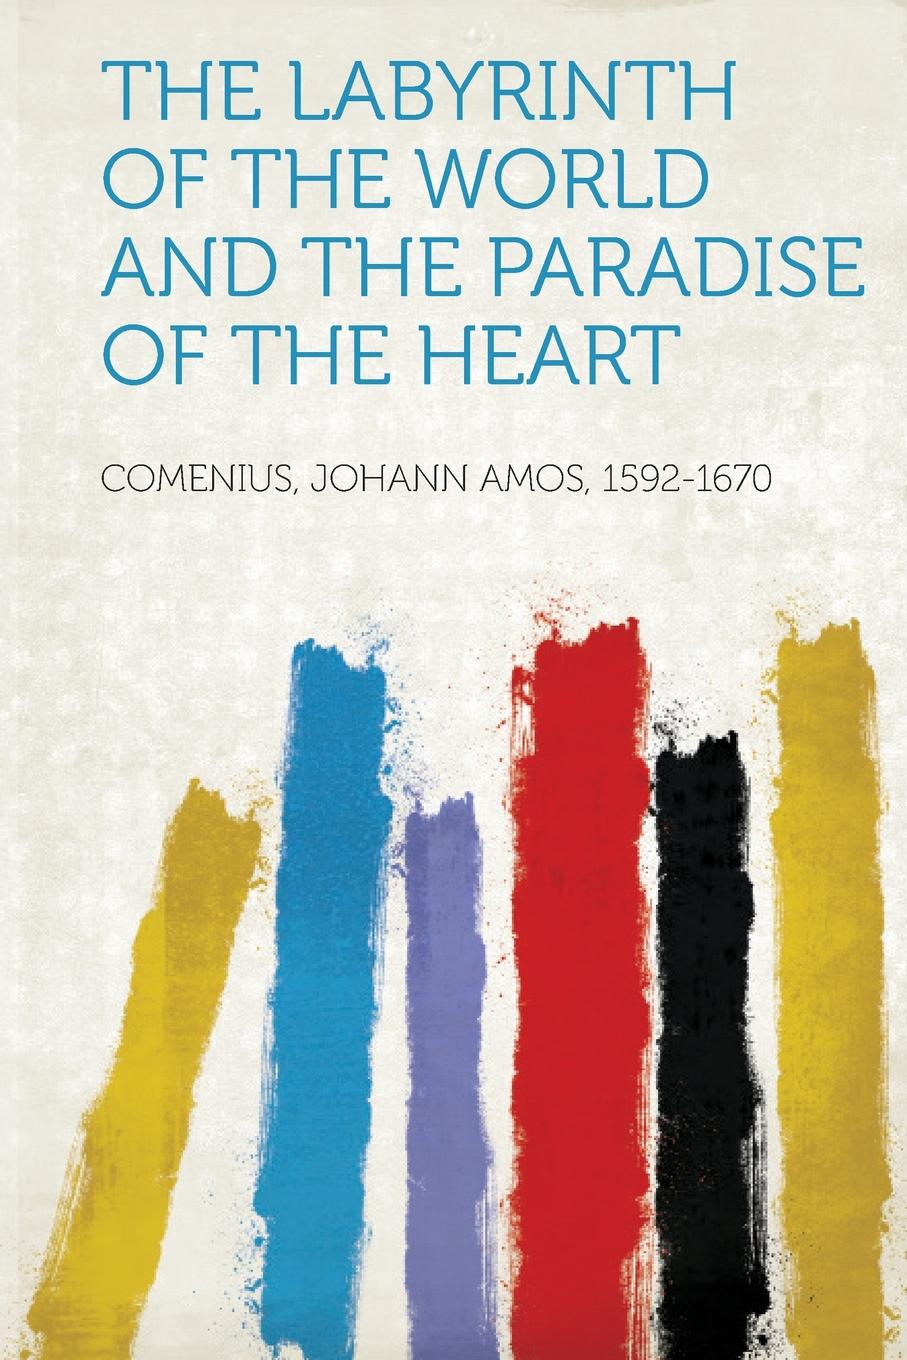 Comenius Johann Amos 1592-1670 The Labyrinth of the World and the Paradise of the Heart